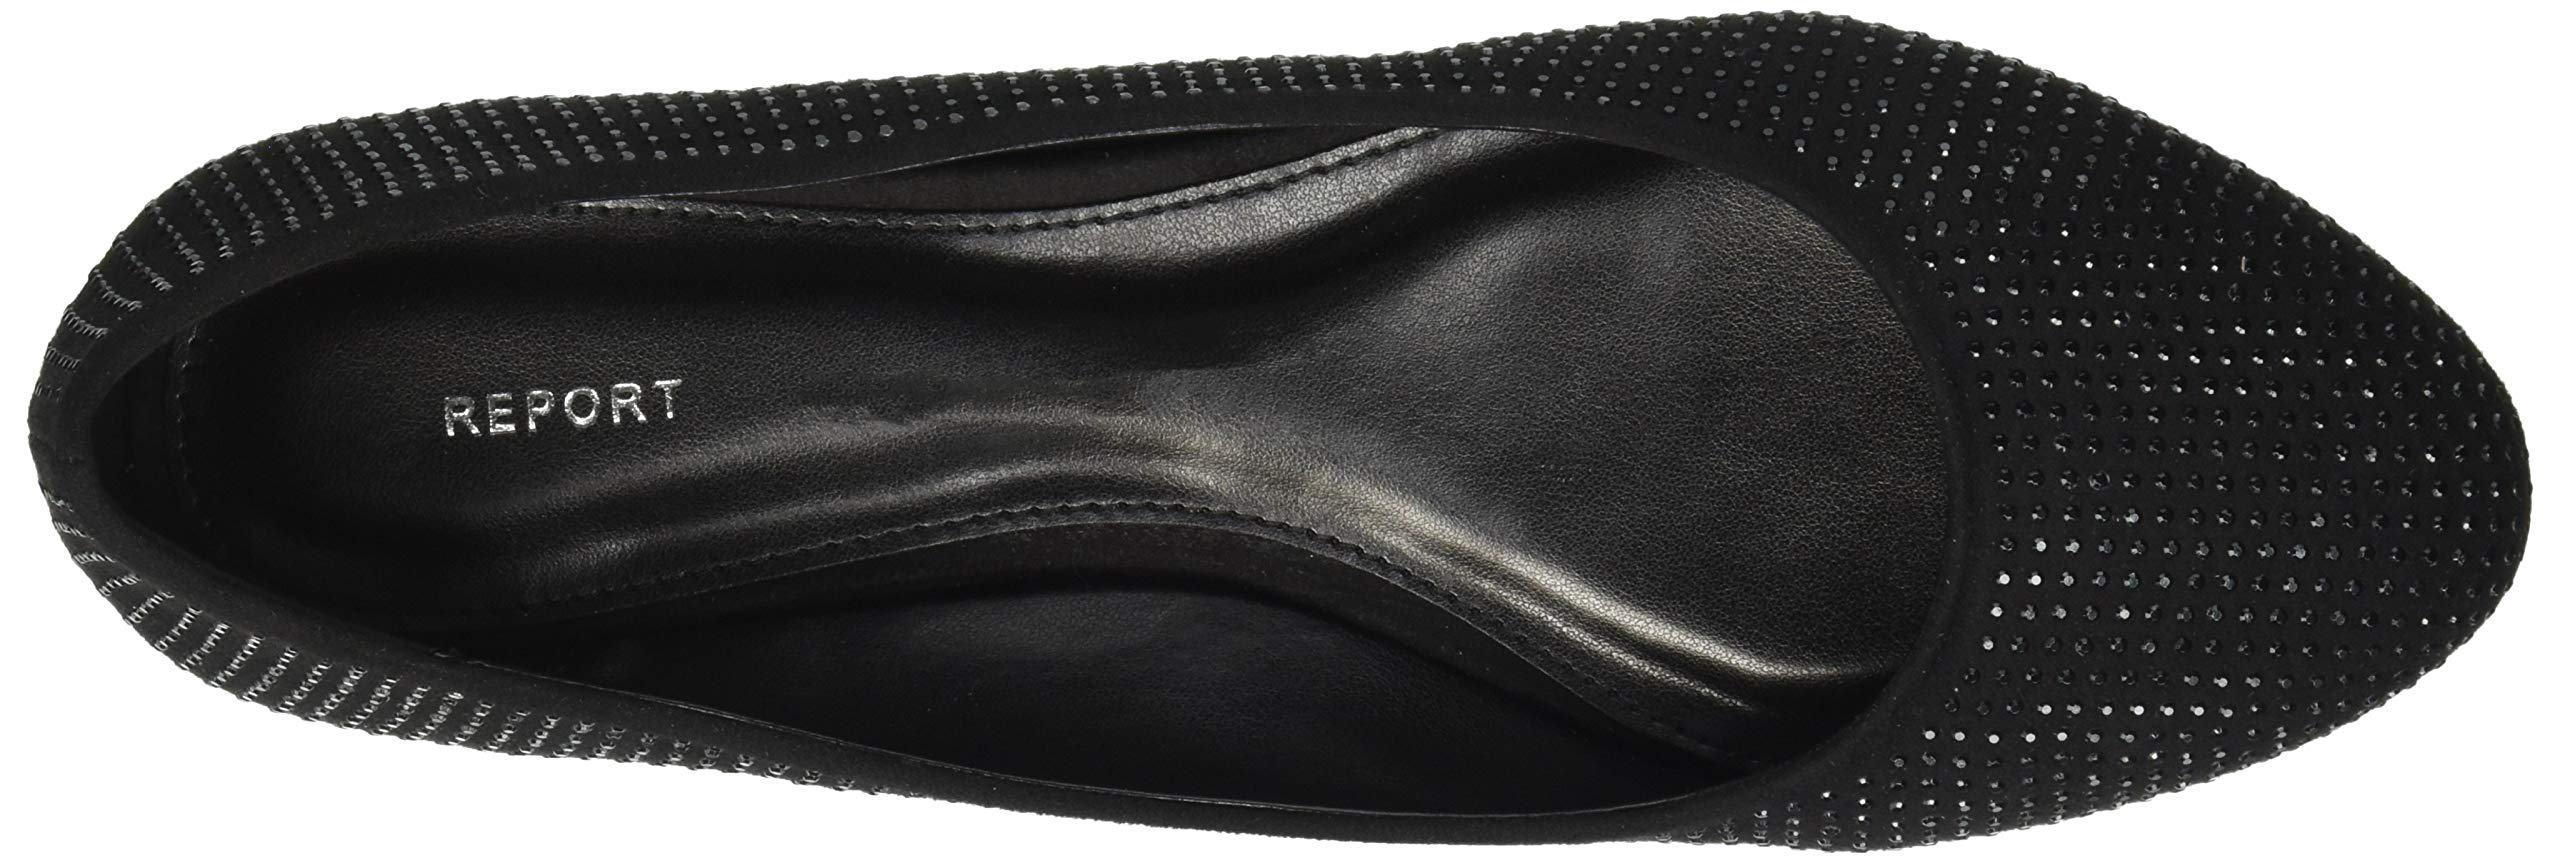 Report Women's Keela Ballet Flat, Black Fox Suede, 9 M US by Report (Image #7)